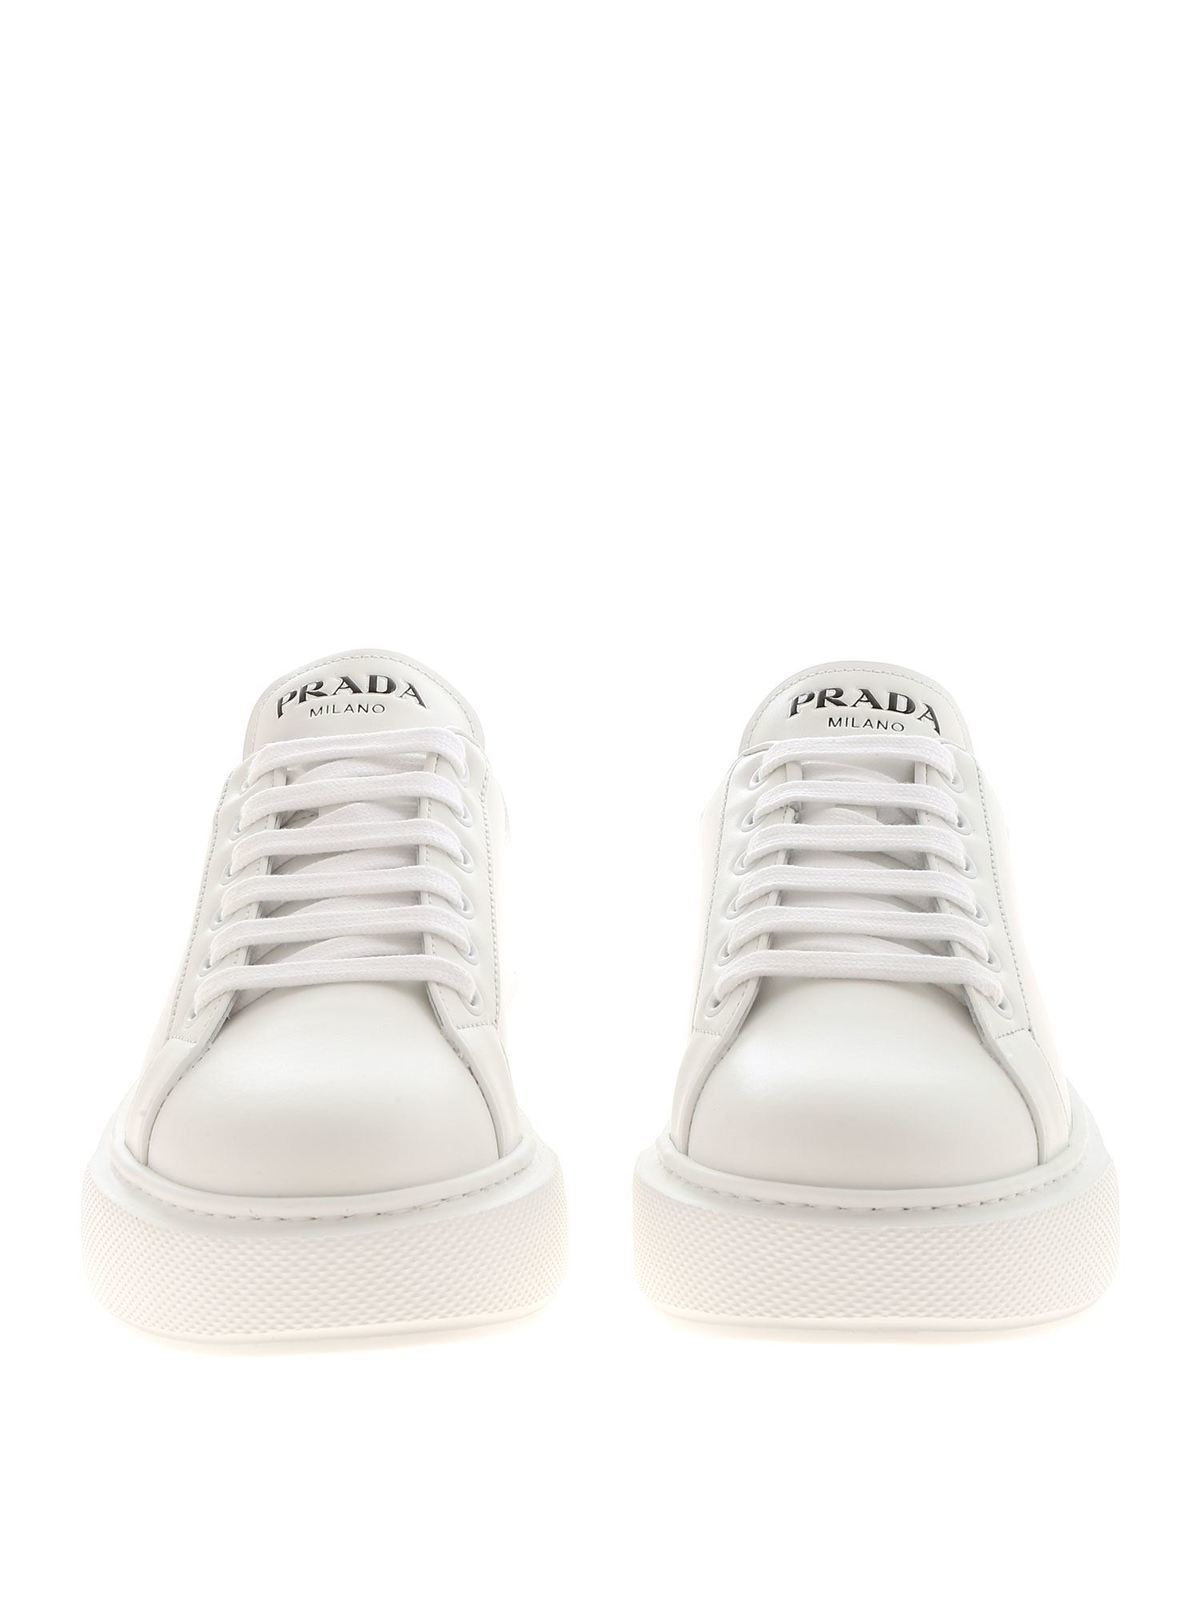 Sneakers in white featuring silver heel